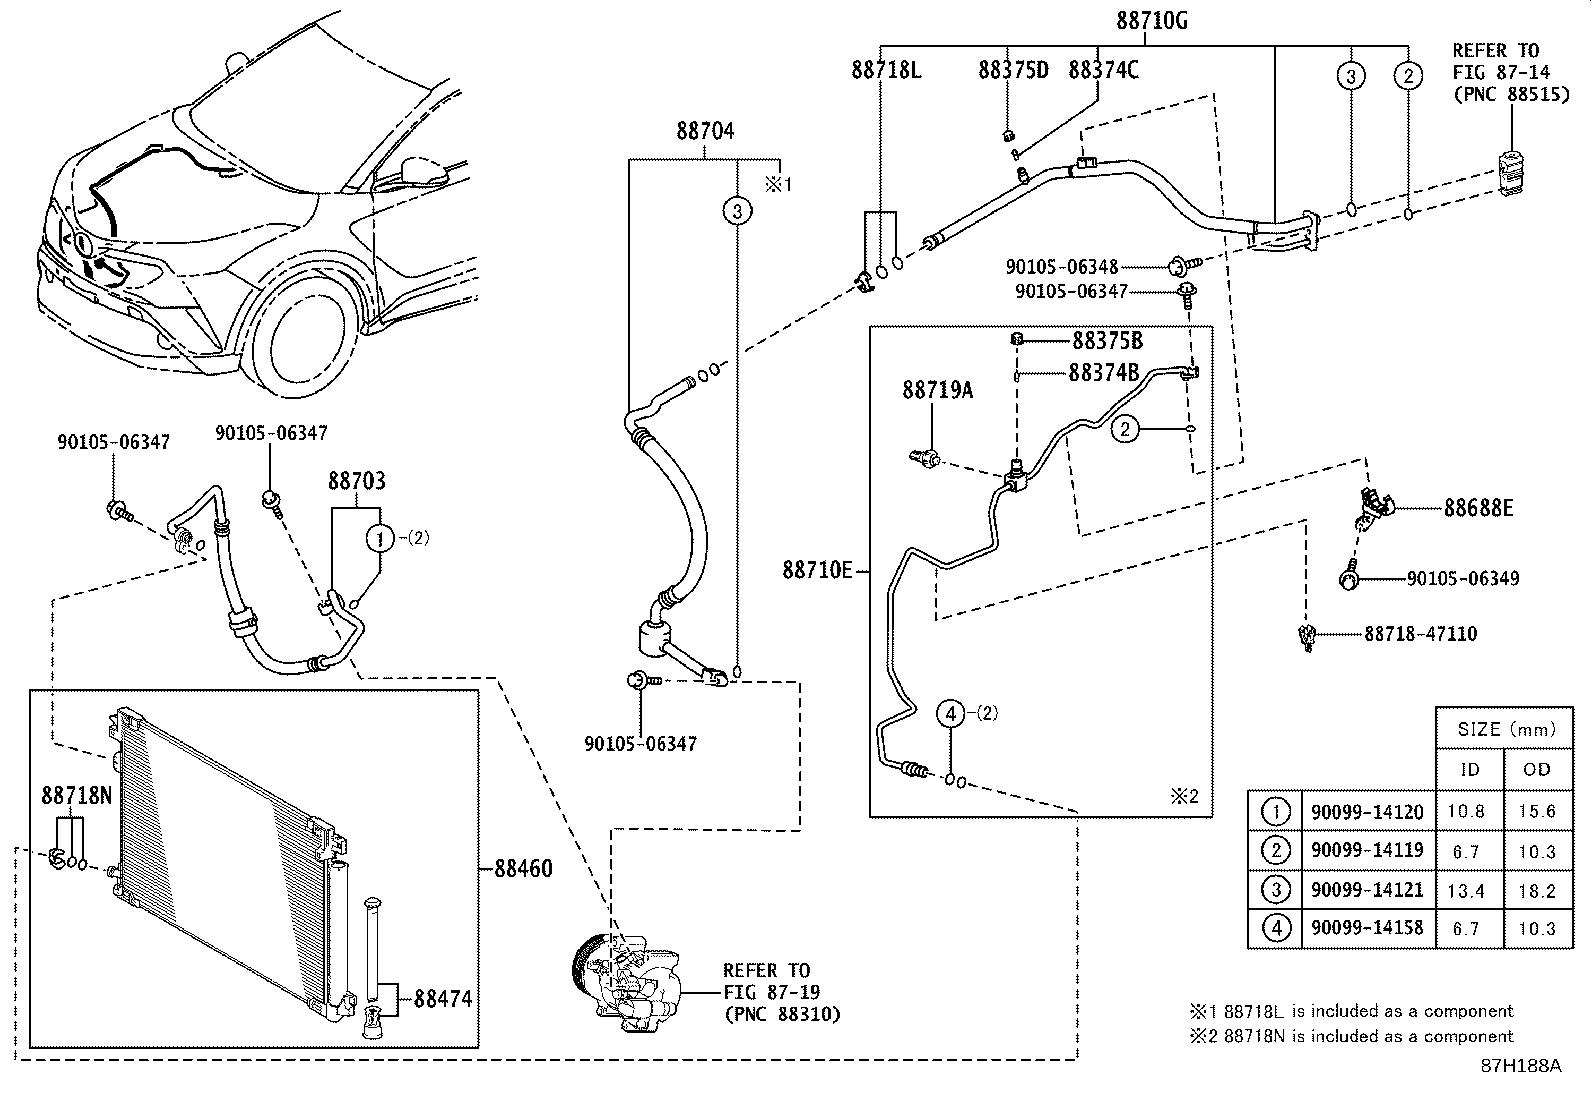 Chevy Volt Diagram - Wiring Diagrams List on